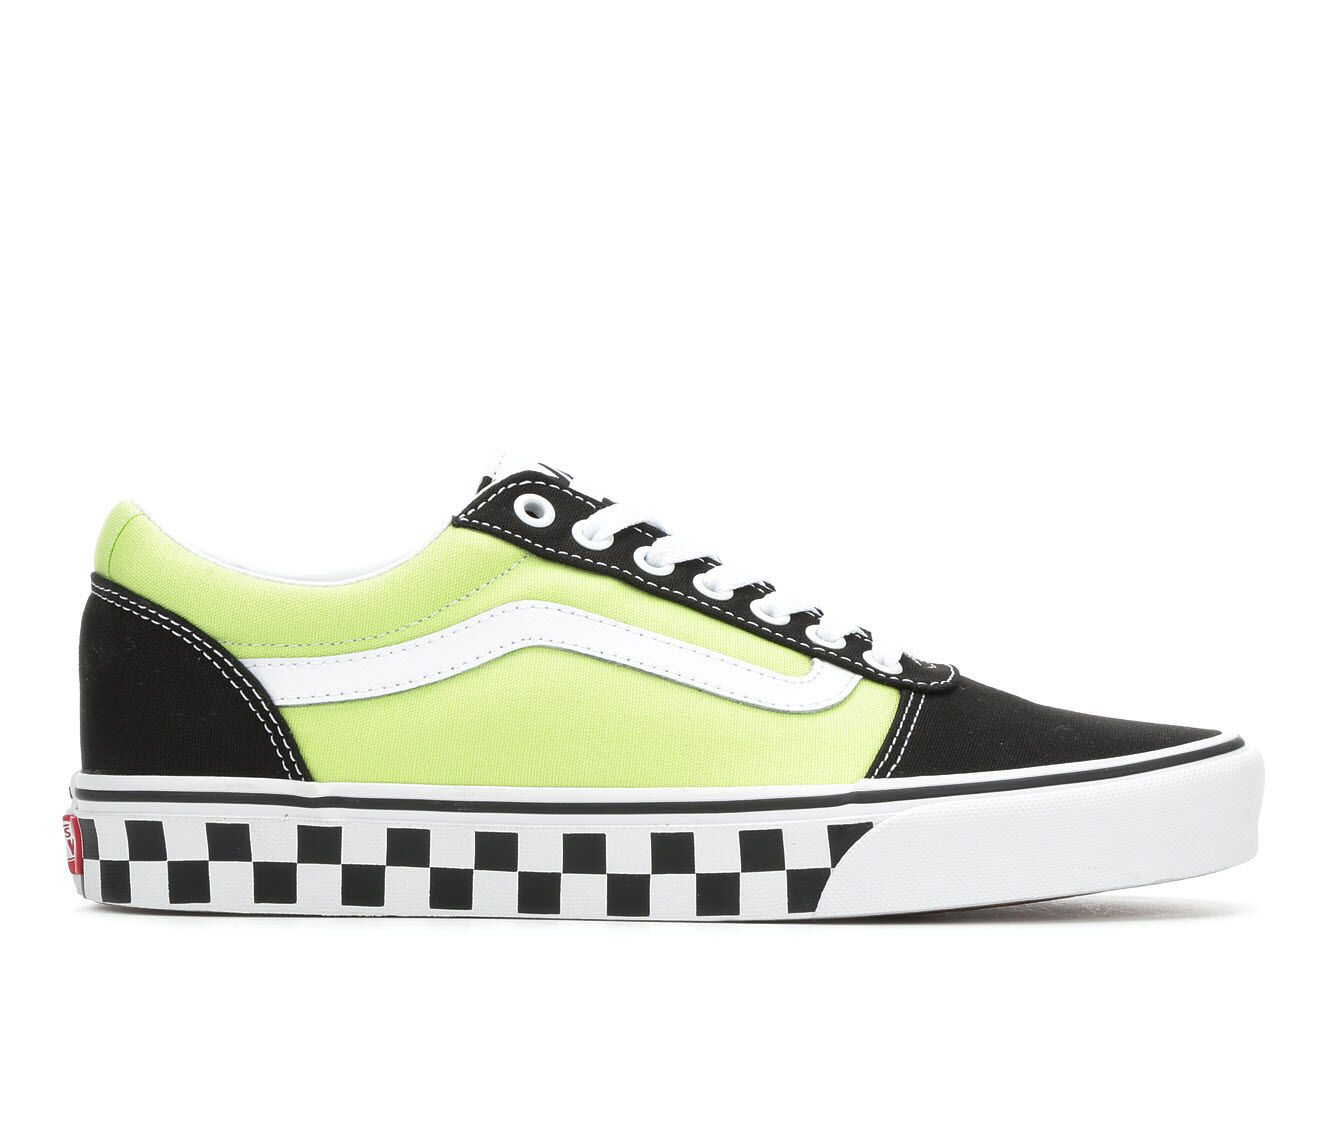 Men's Vans Ward Skate Shoes BlkGrn/Check